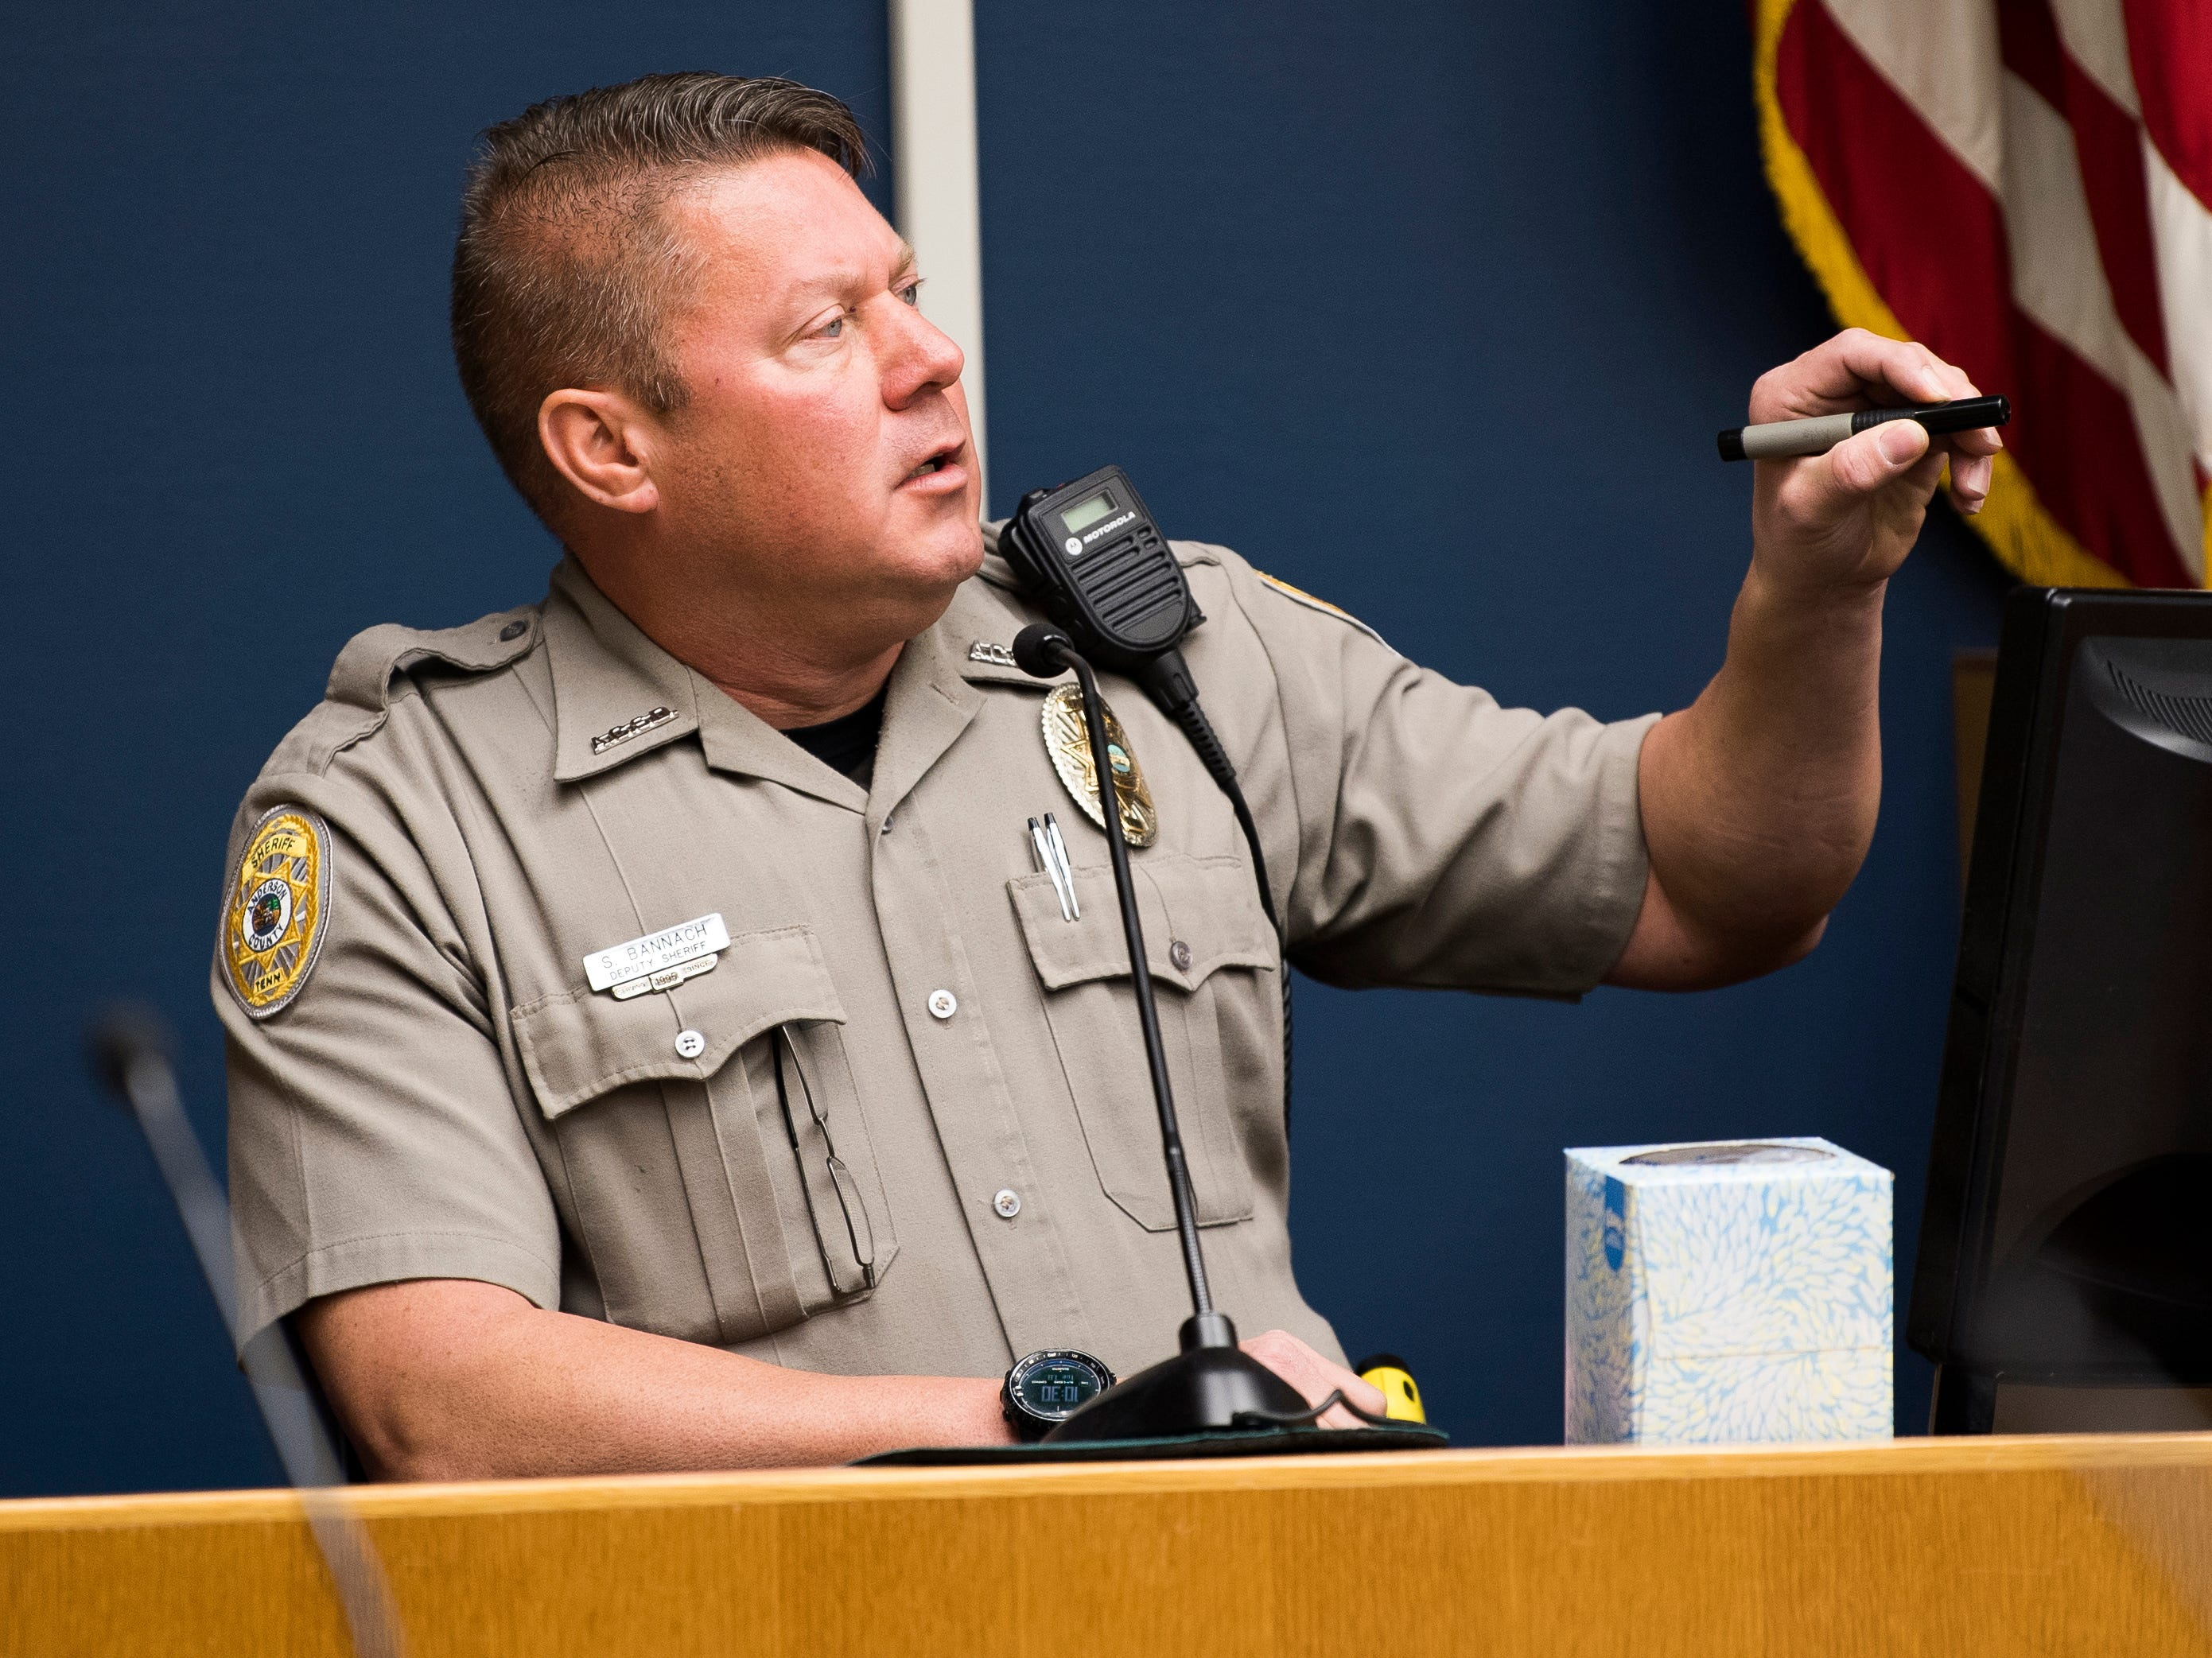 Anderson County Sheriff's Office Deputy Shawn Bannach uses a laser pointer to point out locations on a map during Rapheal Coffey's trial in Knox County Criminal Court on Tuesday, January 8, 2019.